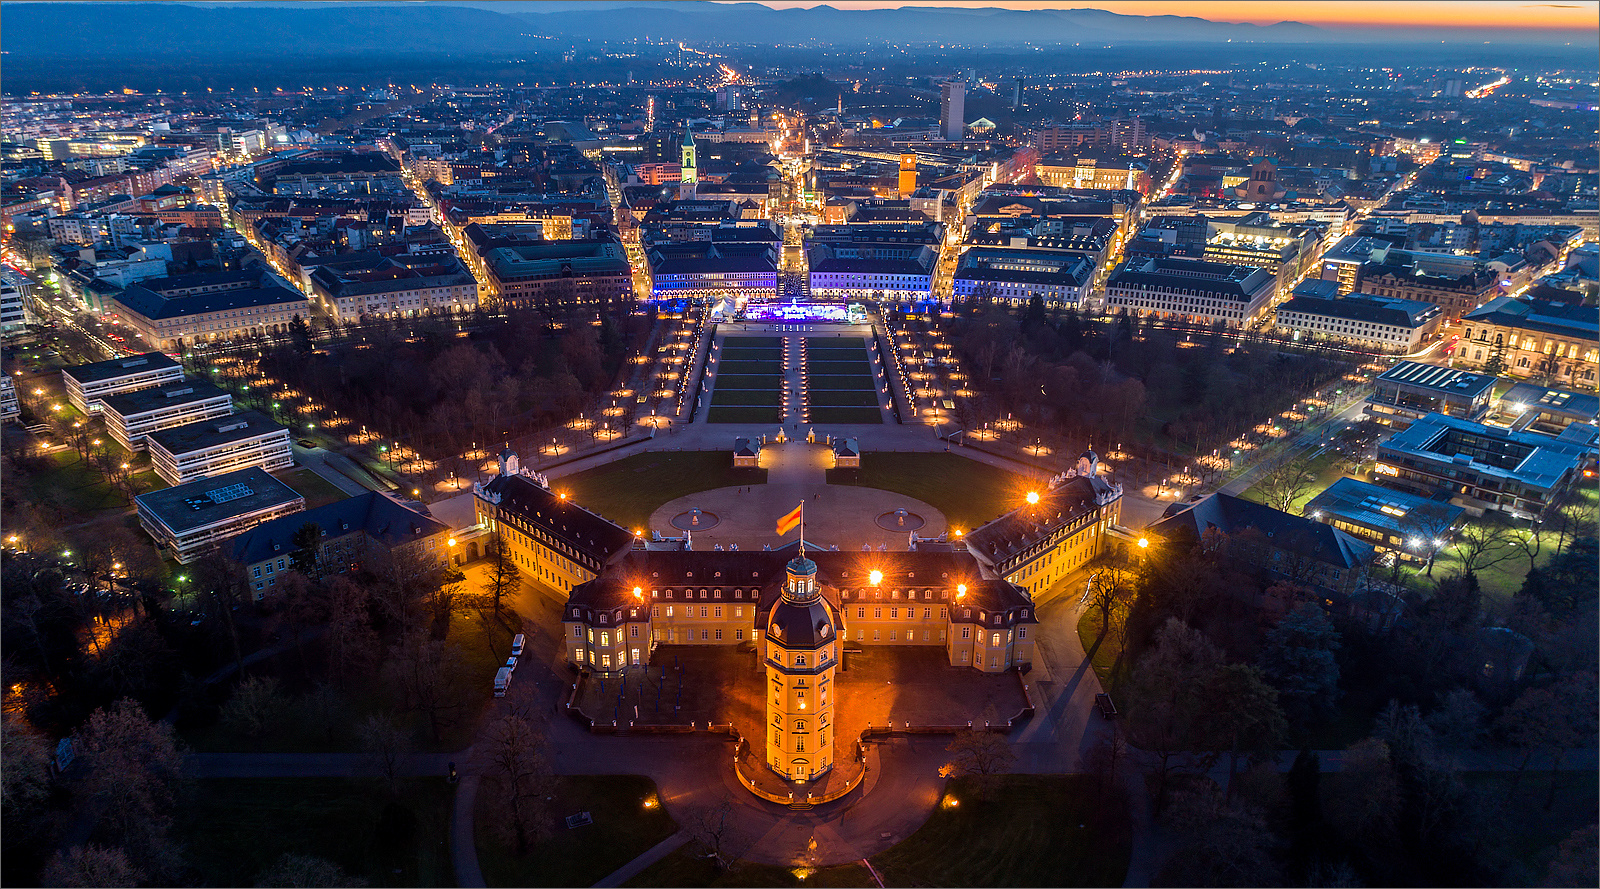 karlsruhe night foto bild night schloss baden bilder auf fotocommunity. Black Bedroom Furniture Sets. Home Design Ideas